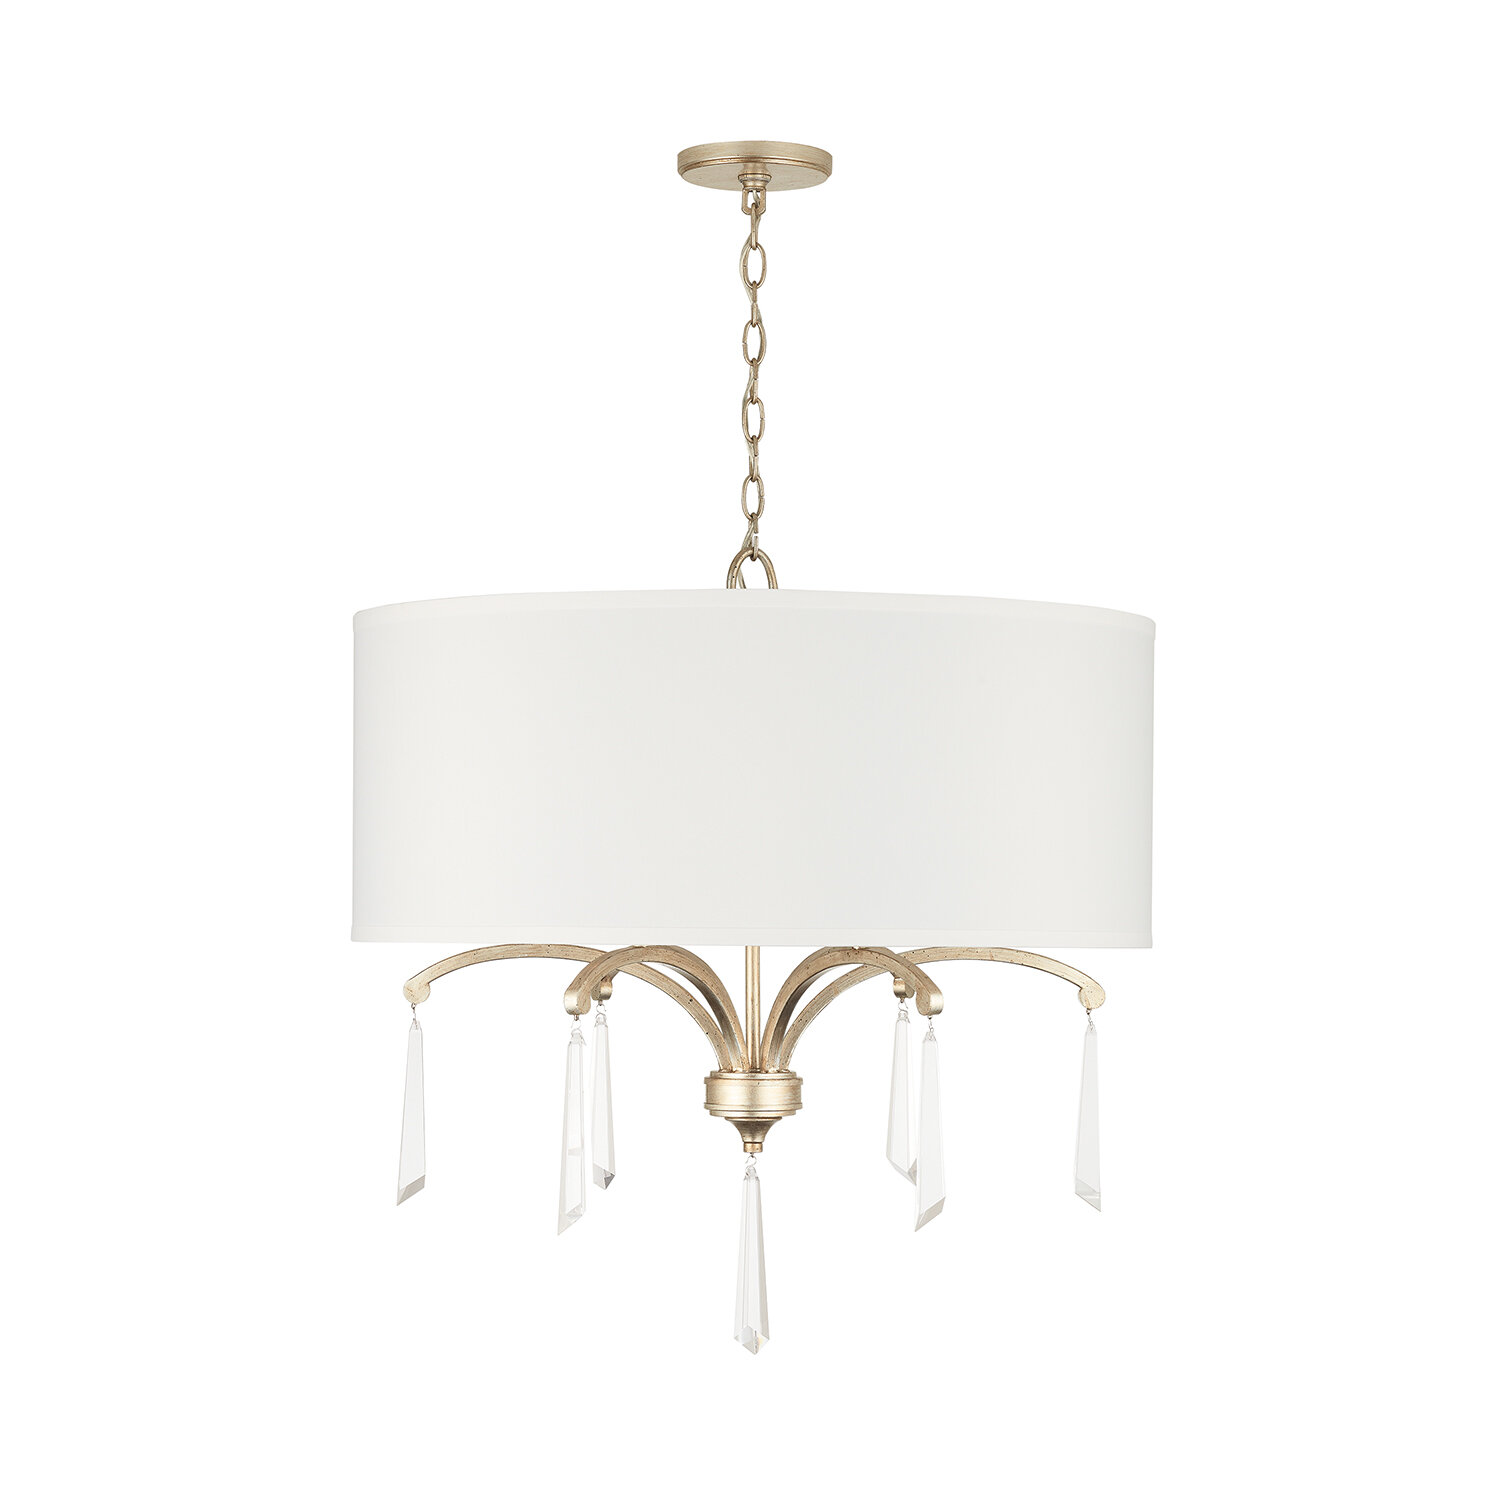 Image of: Rosdorf Park Mathilde 6 Light Shaded Drum Chandelier Crystal Accents Wayfair